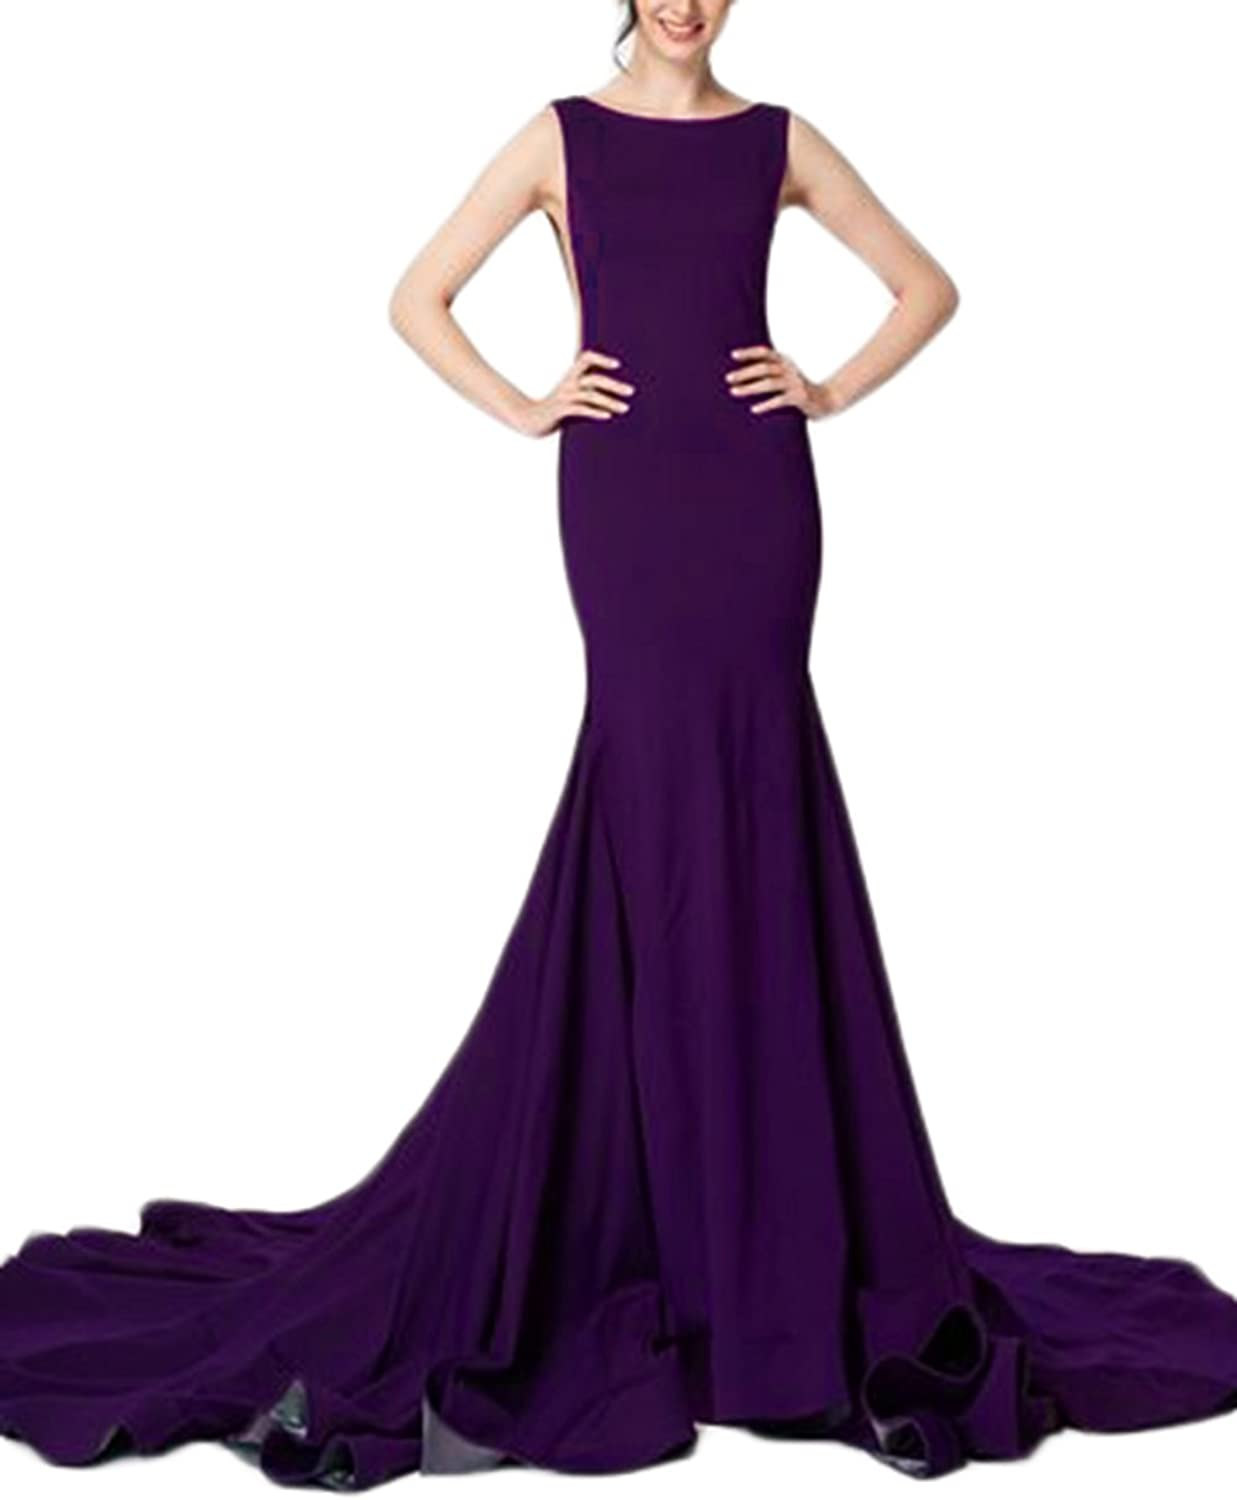 Alilith.Z Women's Sexy Backless Long Mermaid Prom Dresses Formal Evening Dresses Party Gowns with Train 2018 New